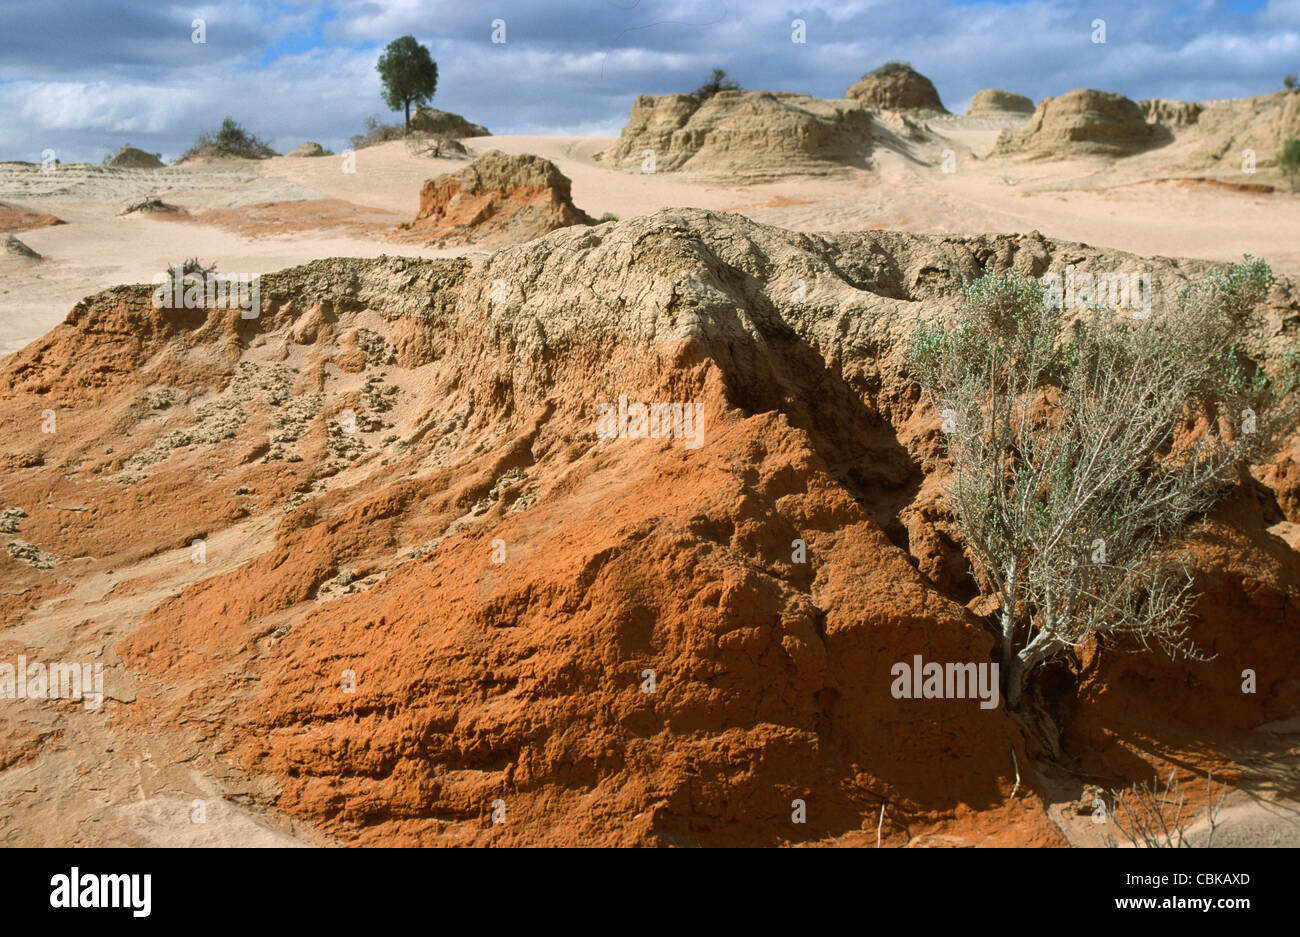 Walls of China at Lake Mungo, a dry lake in the Outback of Southwestern New South Wales, Australia - Stock Image